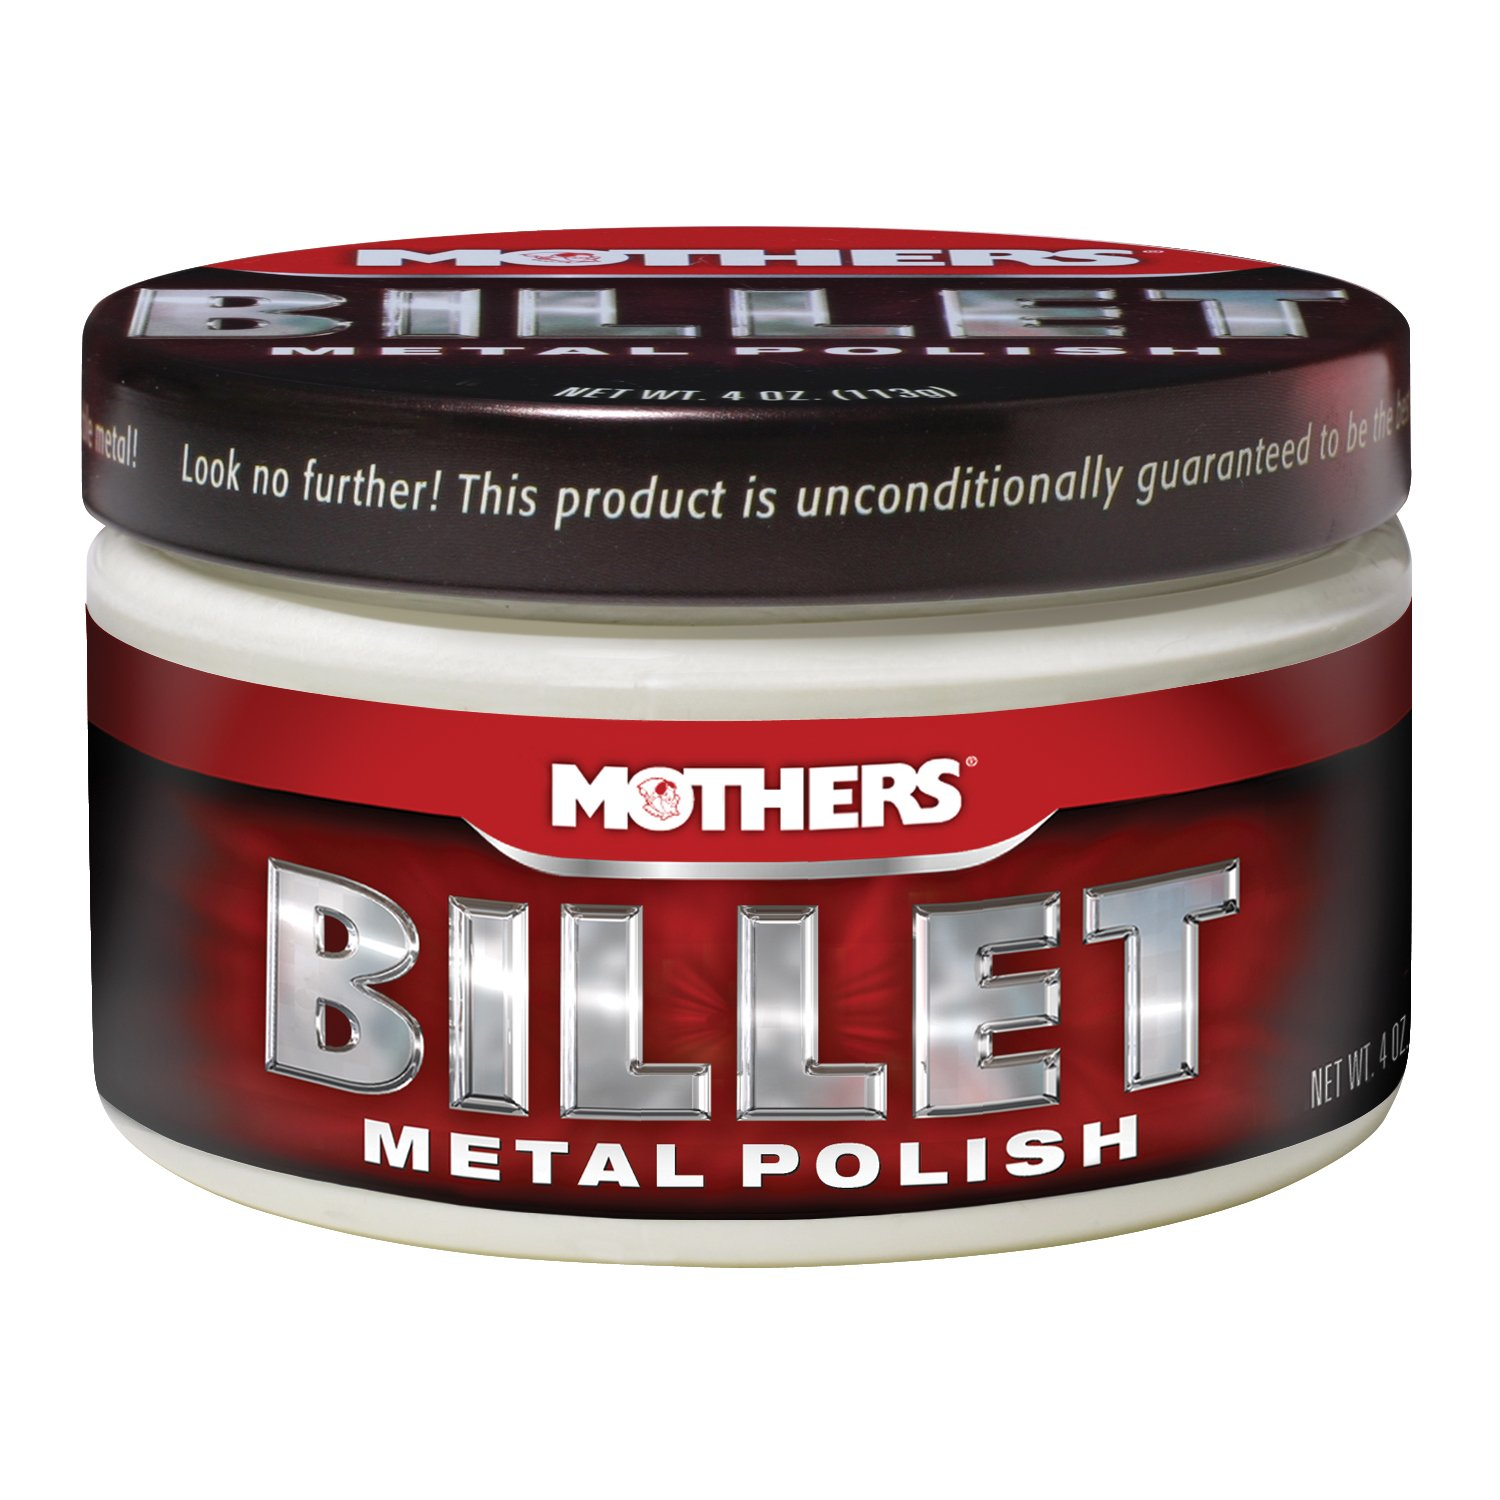 Mothers 5106 35106 Billet Metal Polish, 4-Ounce 05106